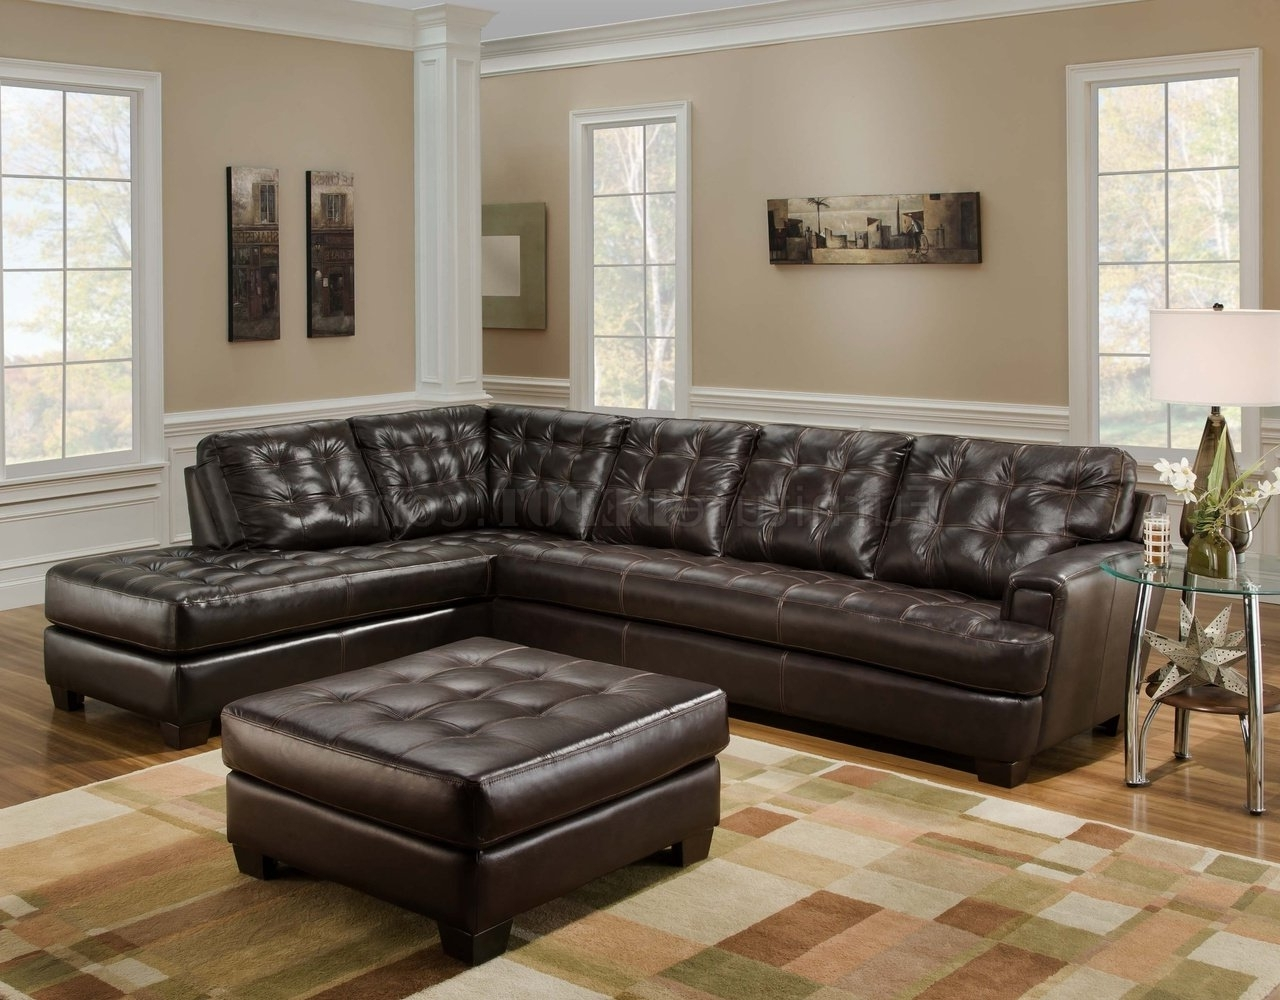 Leather Sectional Sofas With Ottoman With Regard To Preferred Chicory Brown Tufted Top Grain Leather Modern Sectional Sofa (View 11 of 20)